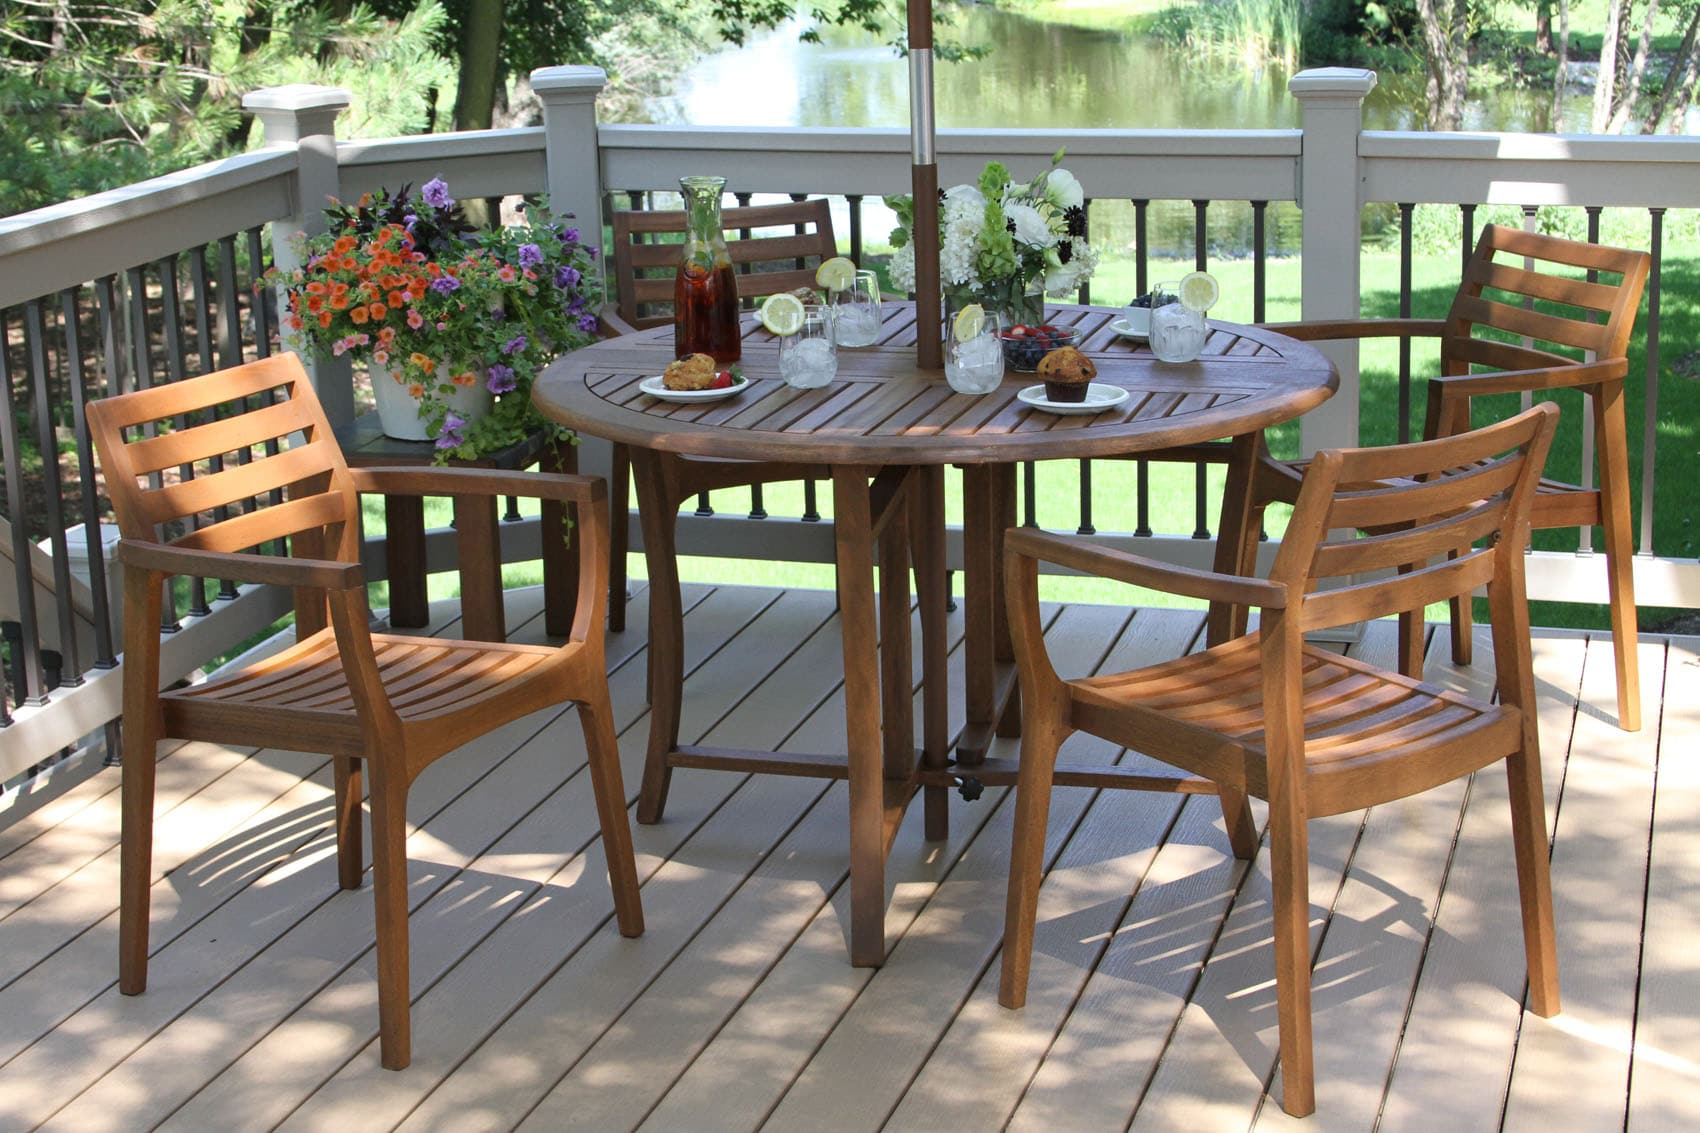 20420   Danish Eucalyptus Stacking Chair, 4pk. With 10025 (48 In. Dia